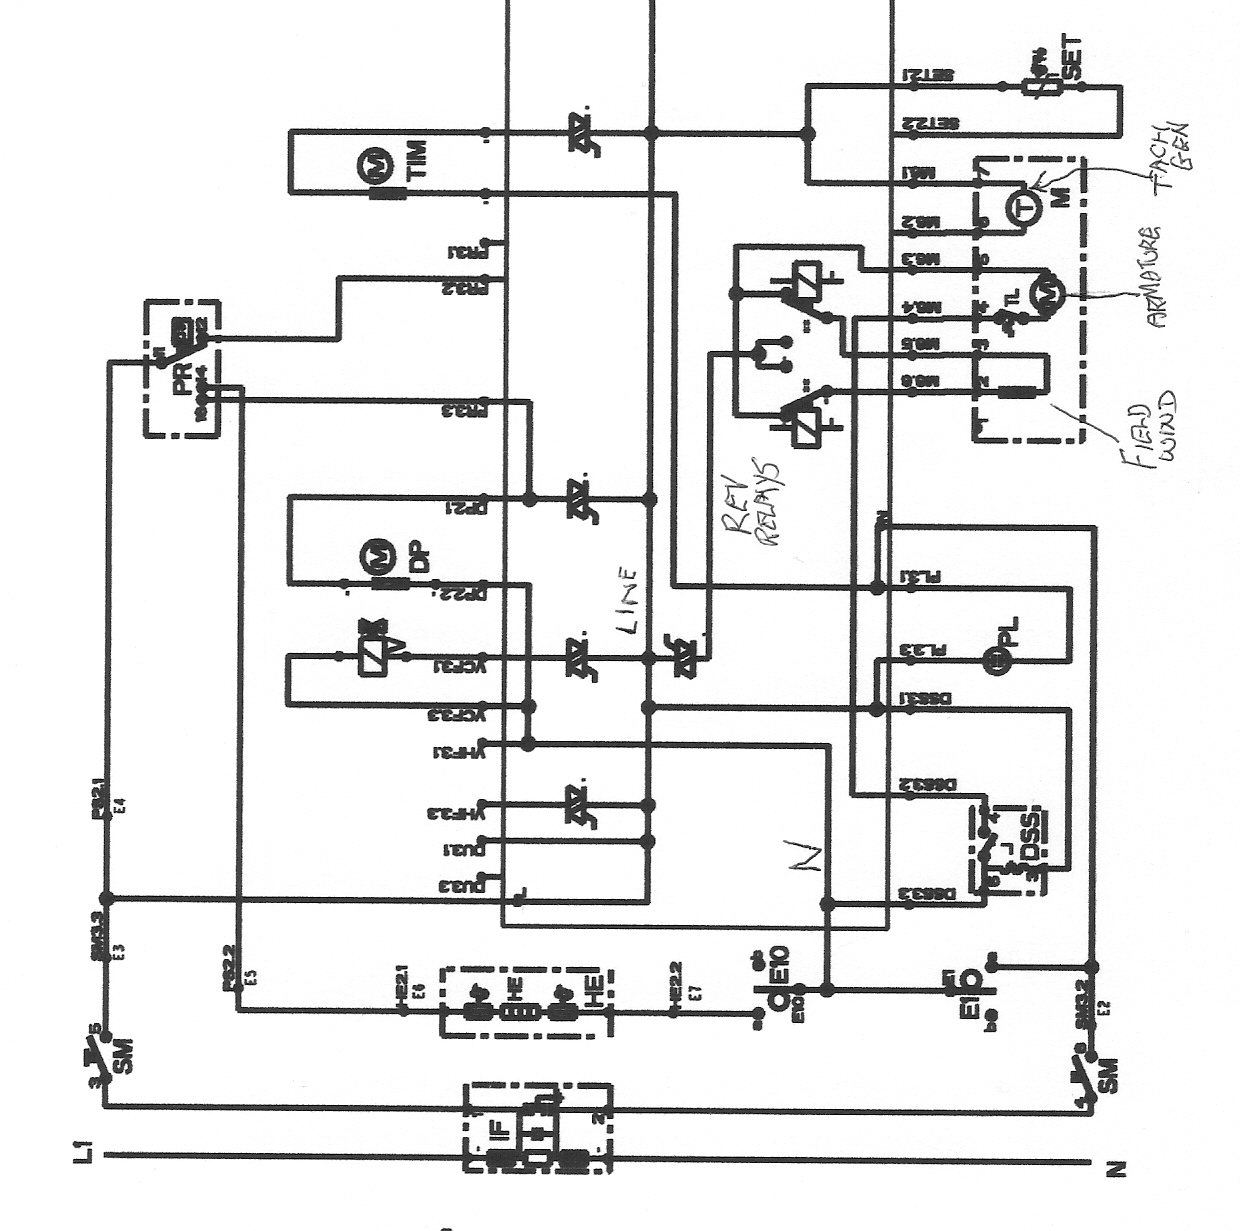 ceset universal engine electronics forum (circuits, projects and Single Phase Motor Wiring Diagrams at gsmx.co